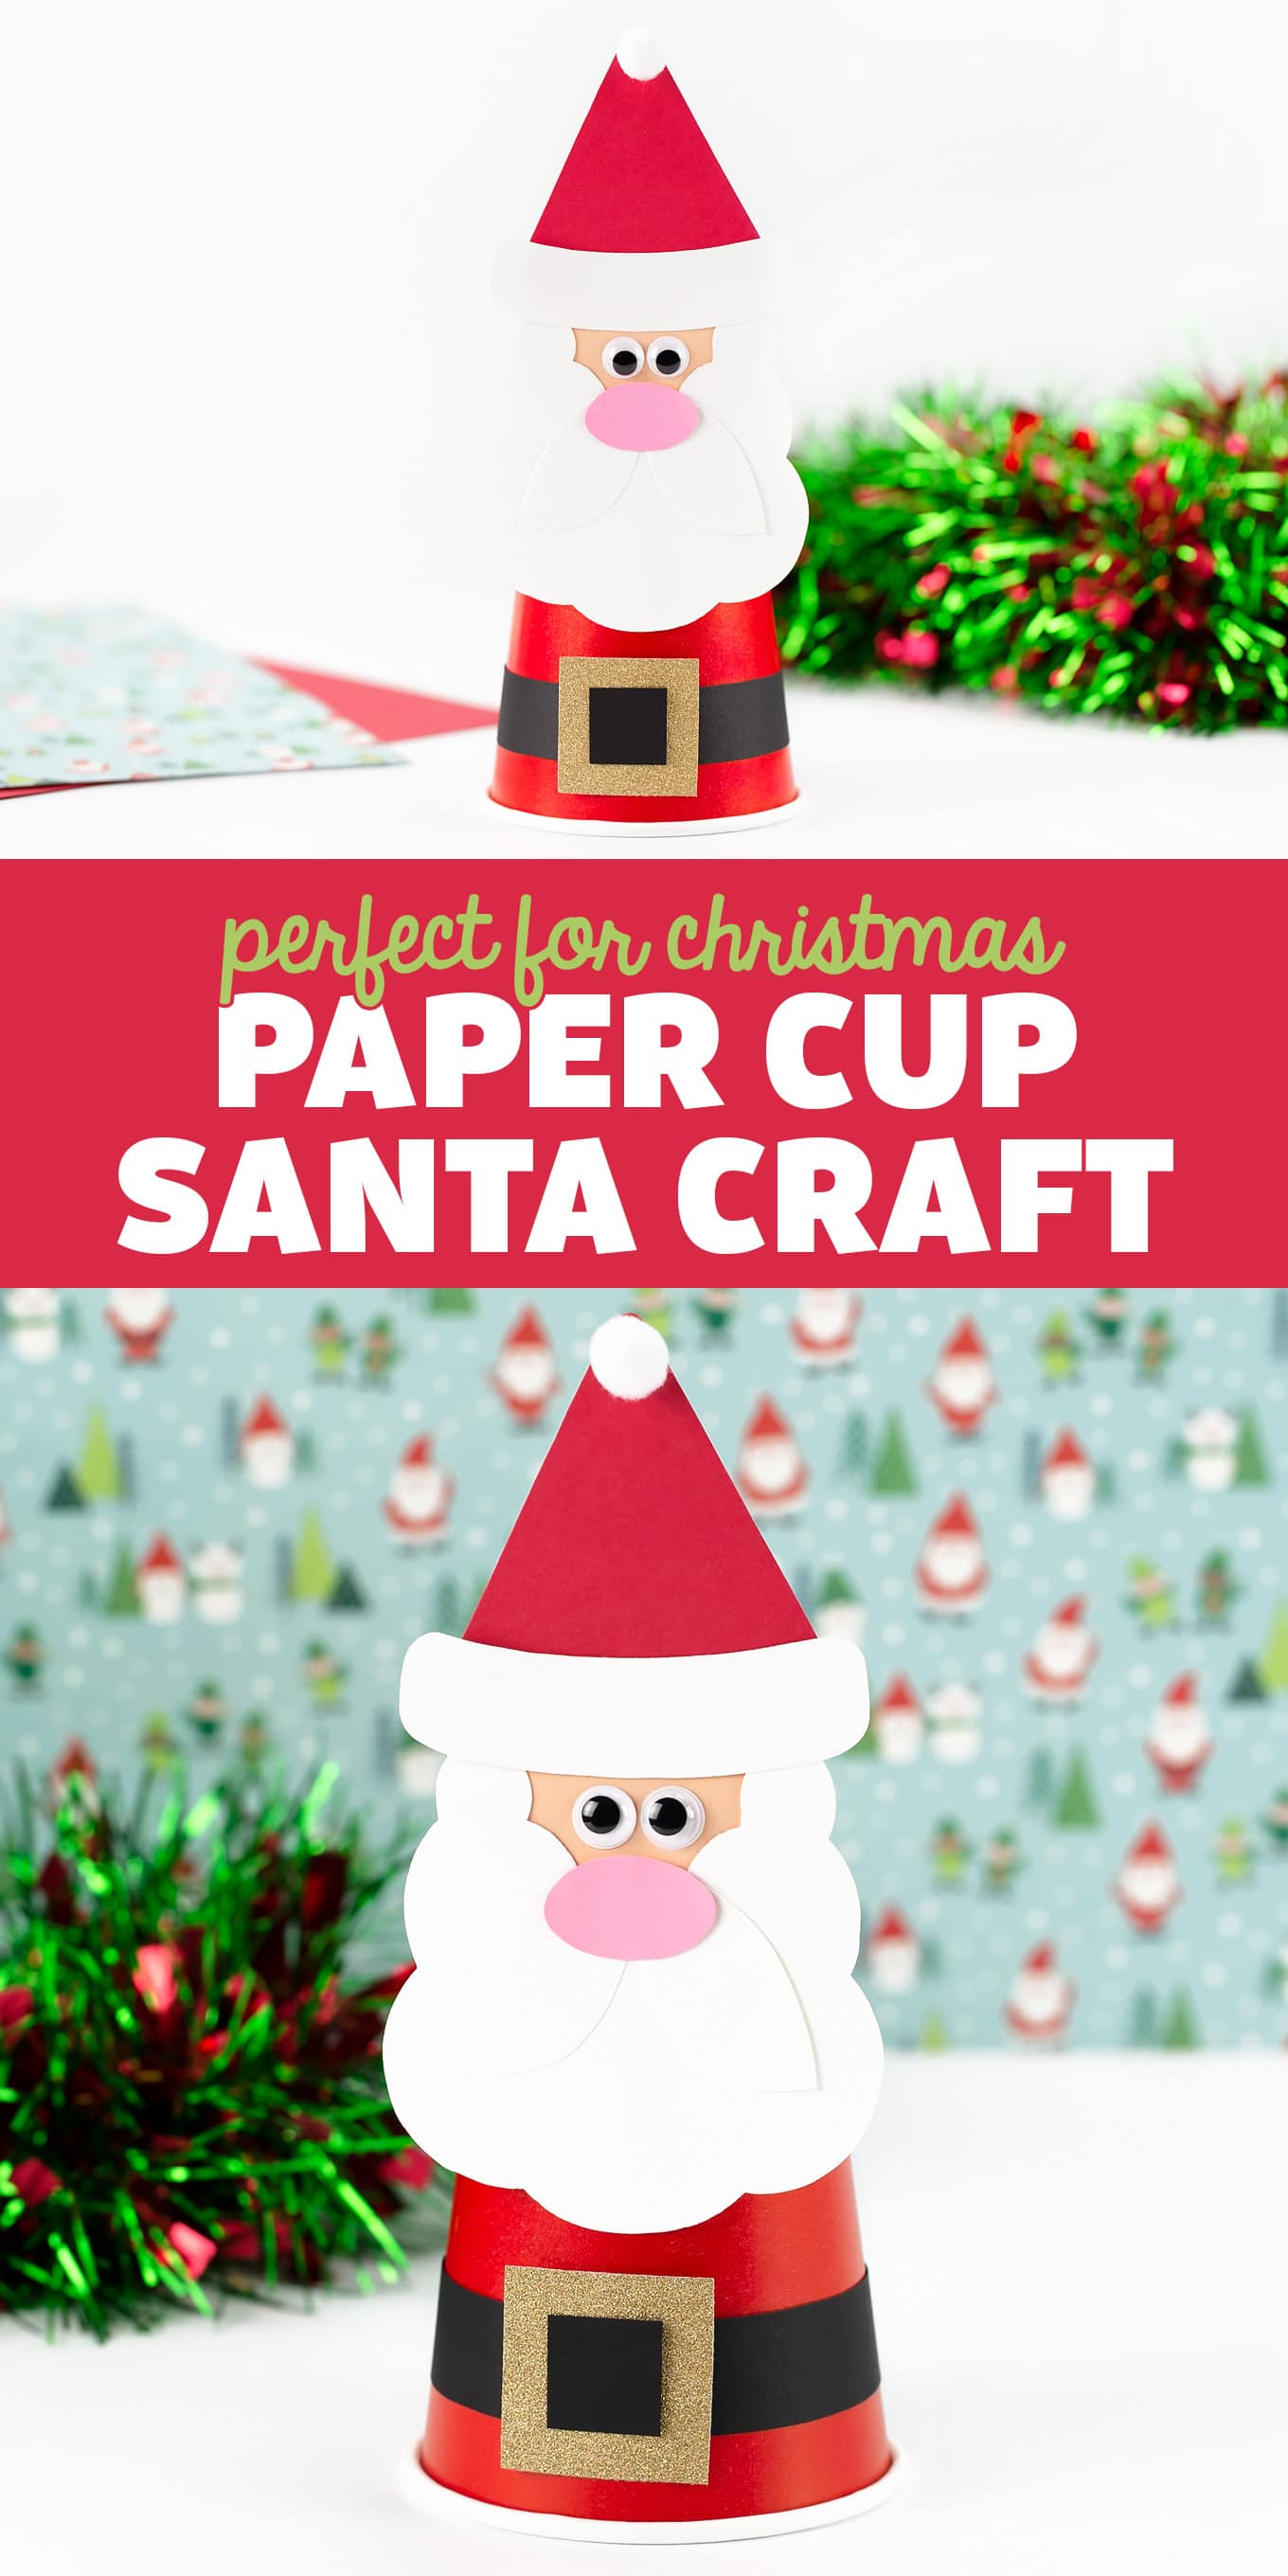 Paper Cup Santa Craft - This festive Paper CupSanta Craftincludes a free printable template, making it easy and fun for kids of all ages! via @firefliesandmudpies